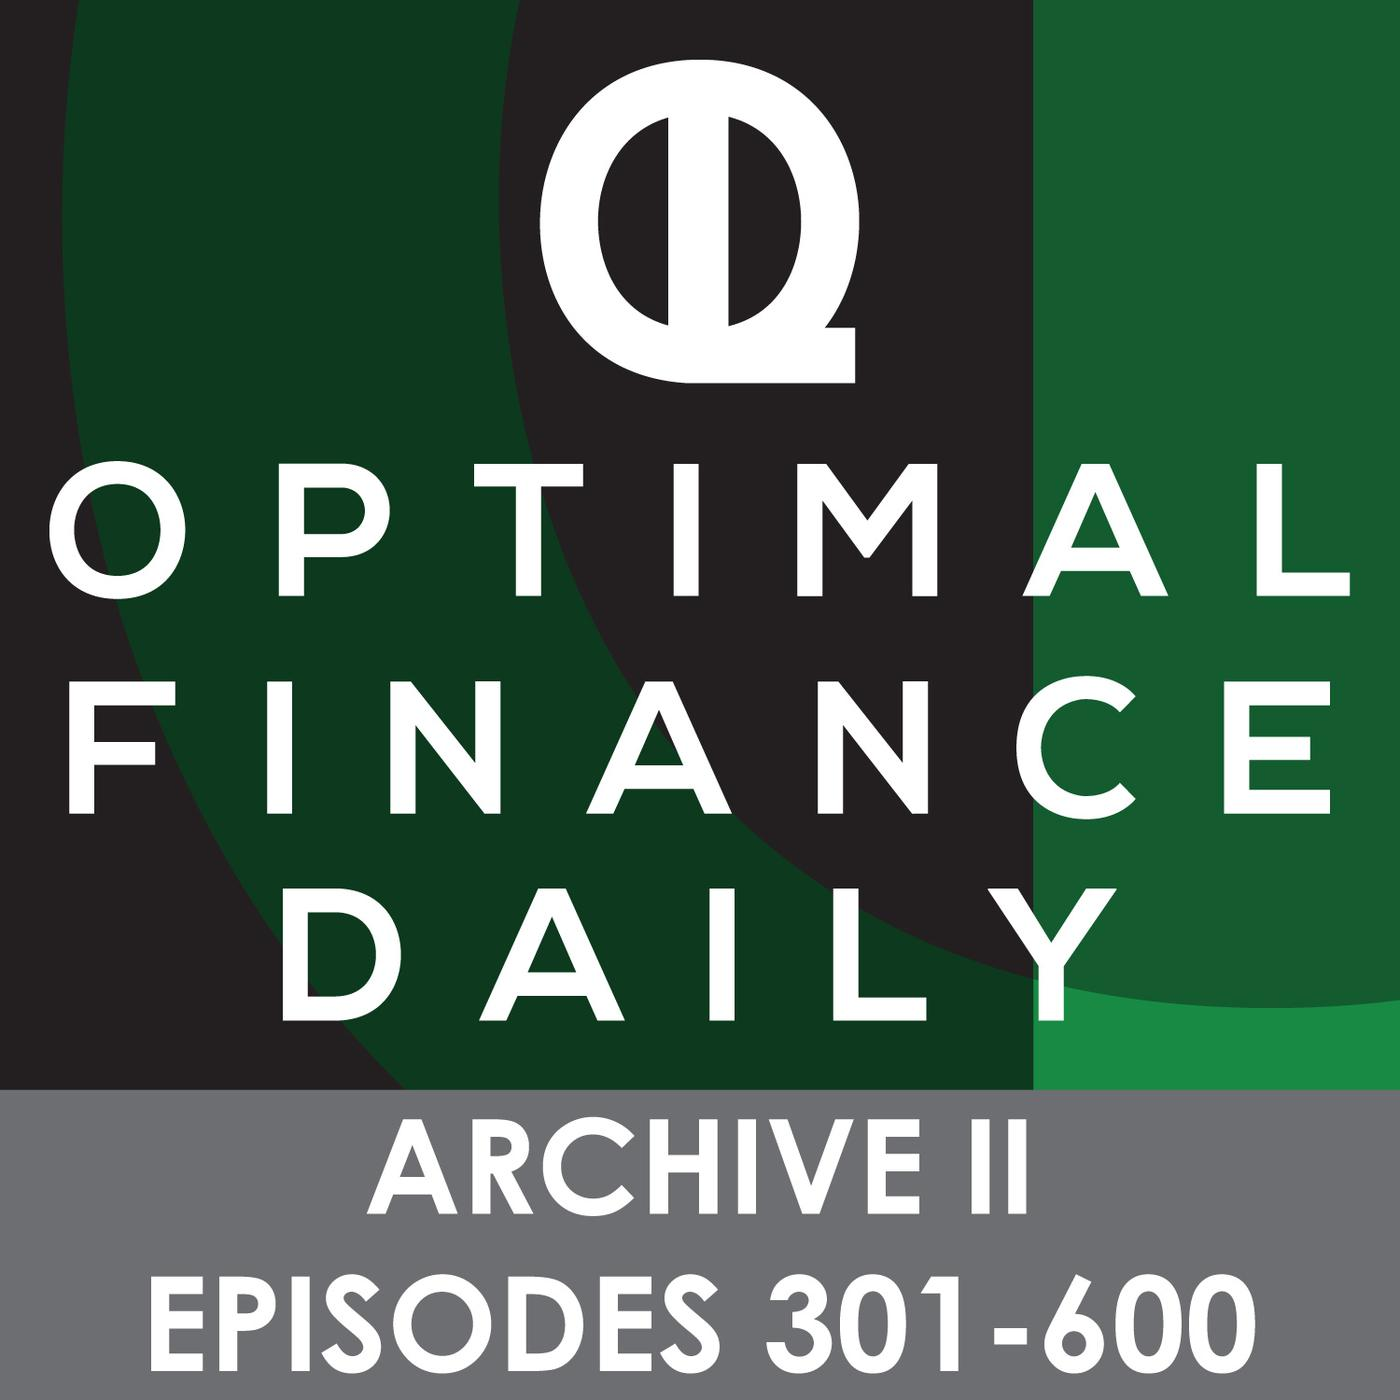 Optimal Finance Daily - ARCHIVE 2 - Episodes 301-600 ONLY